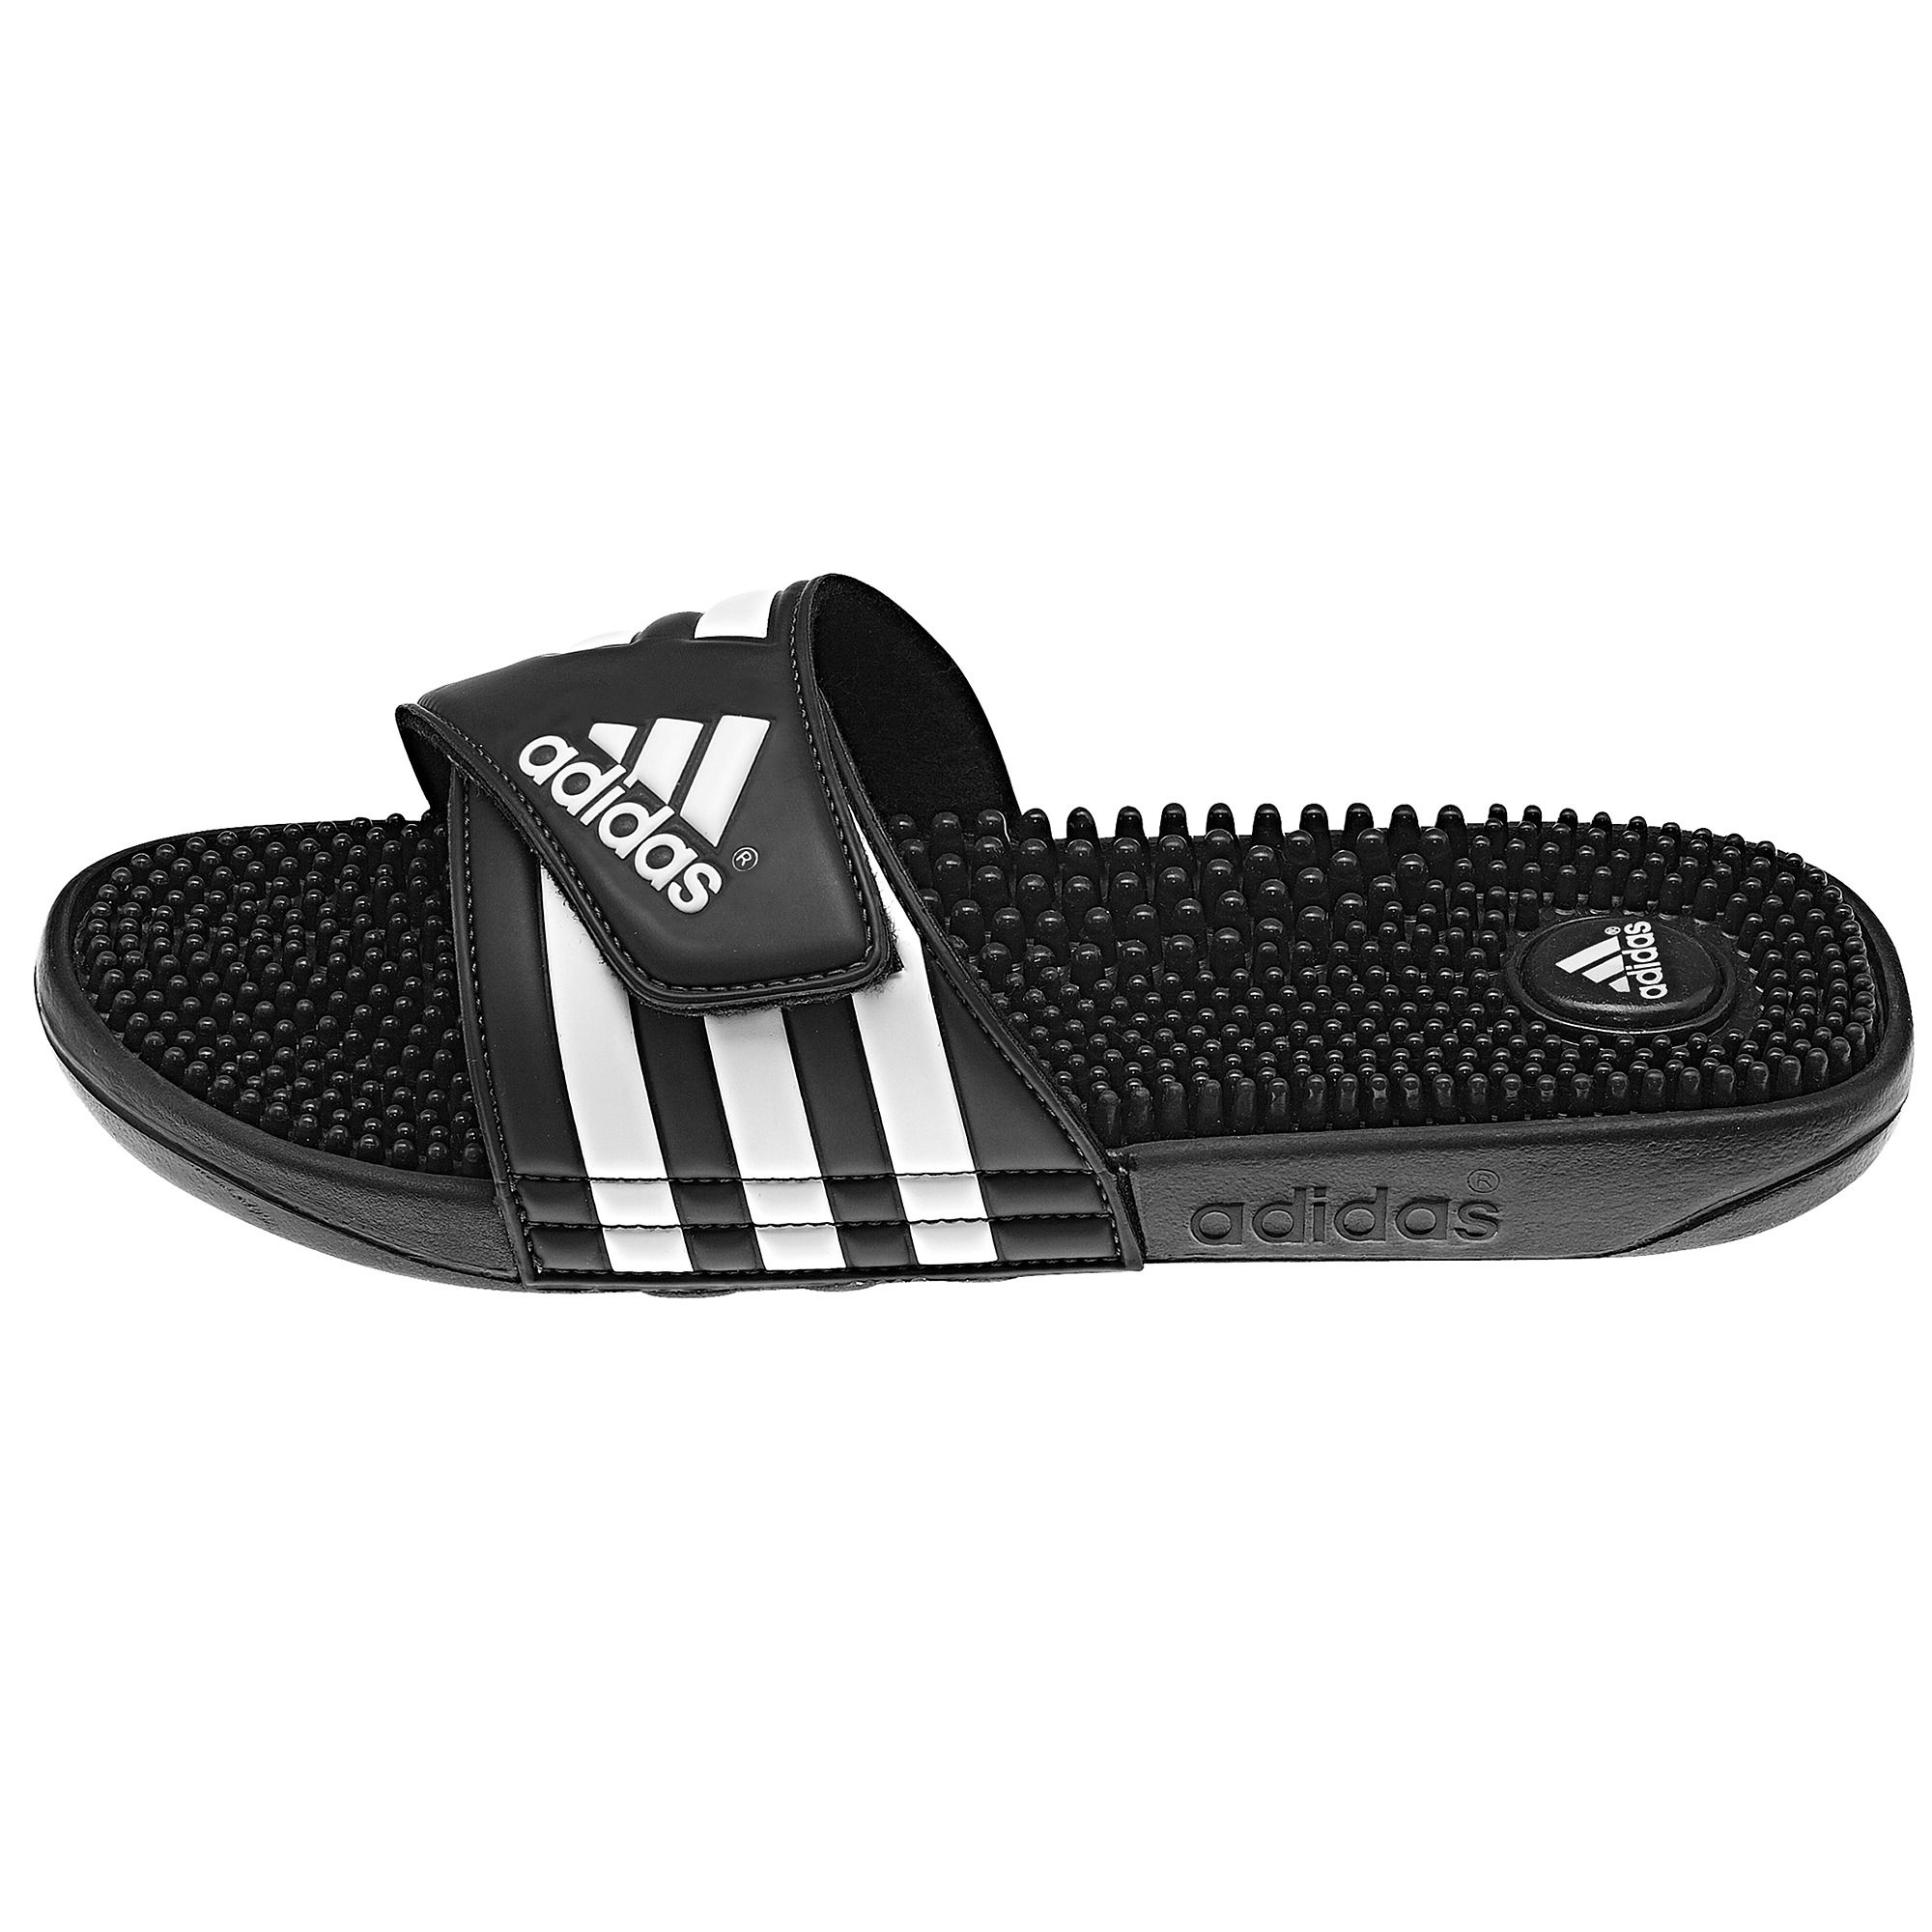 c449fe158b5fc4 The kids  adissage Slides by adidas take all the plush comfort of the adult  slide and size it down for kids. They have the easy on-and-off synthetic  strap ...